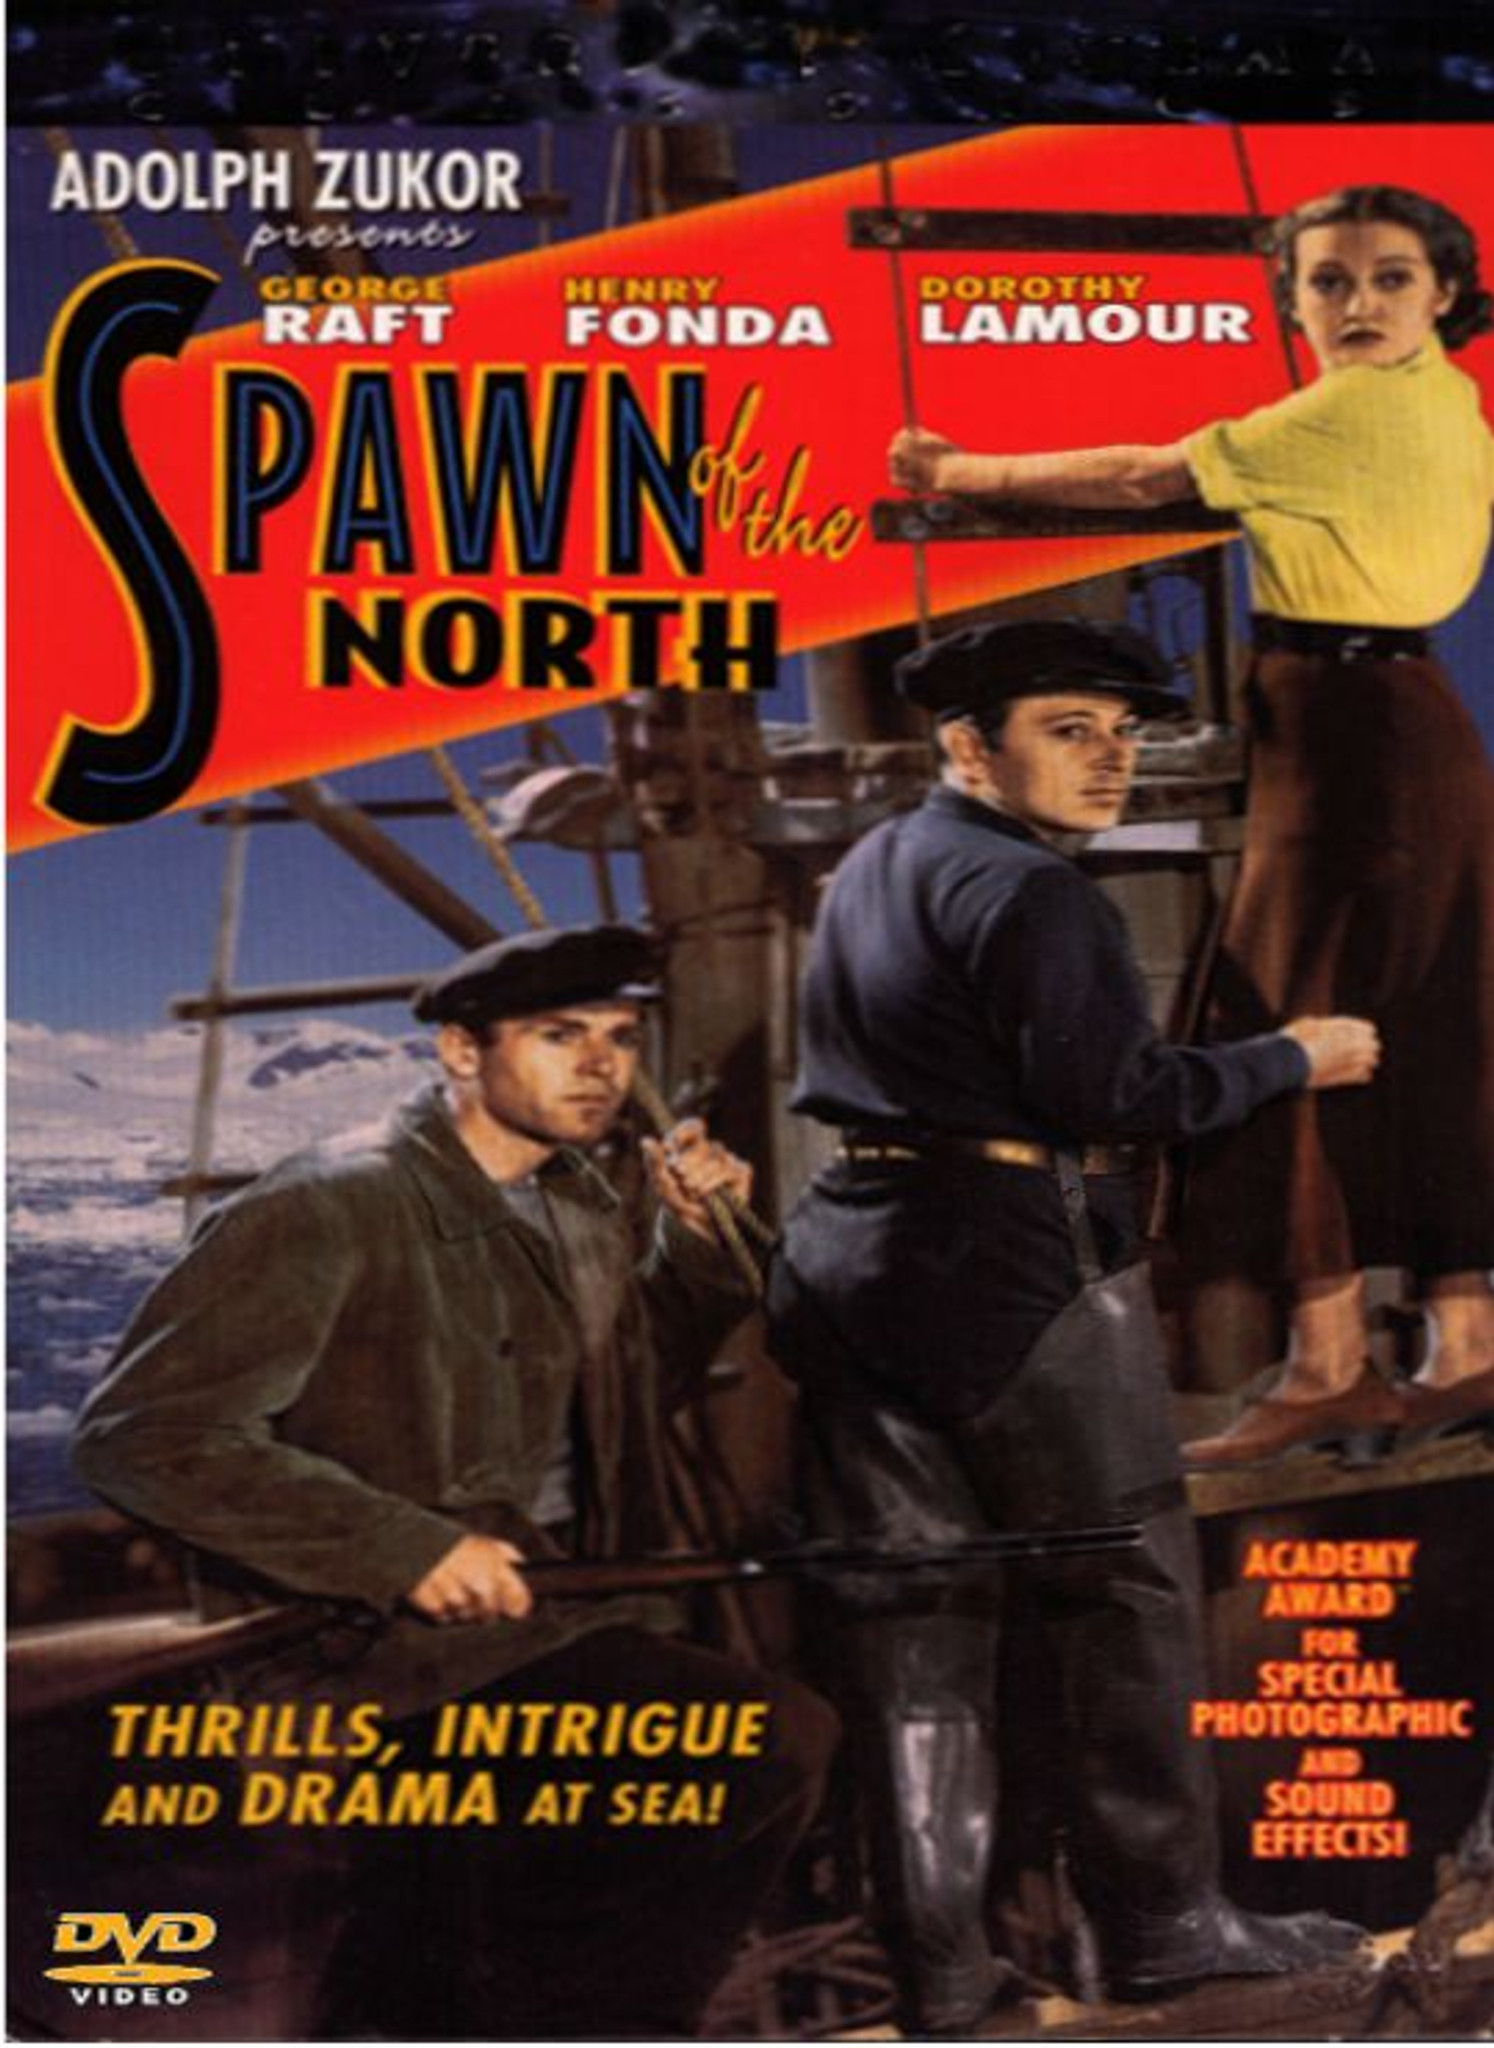 Spawn of the North DVD